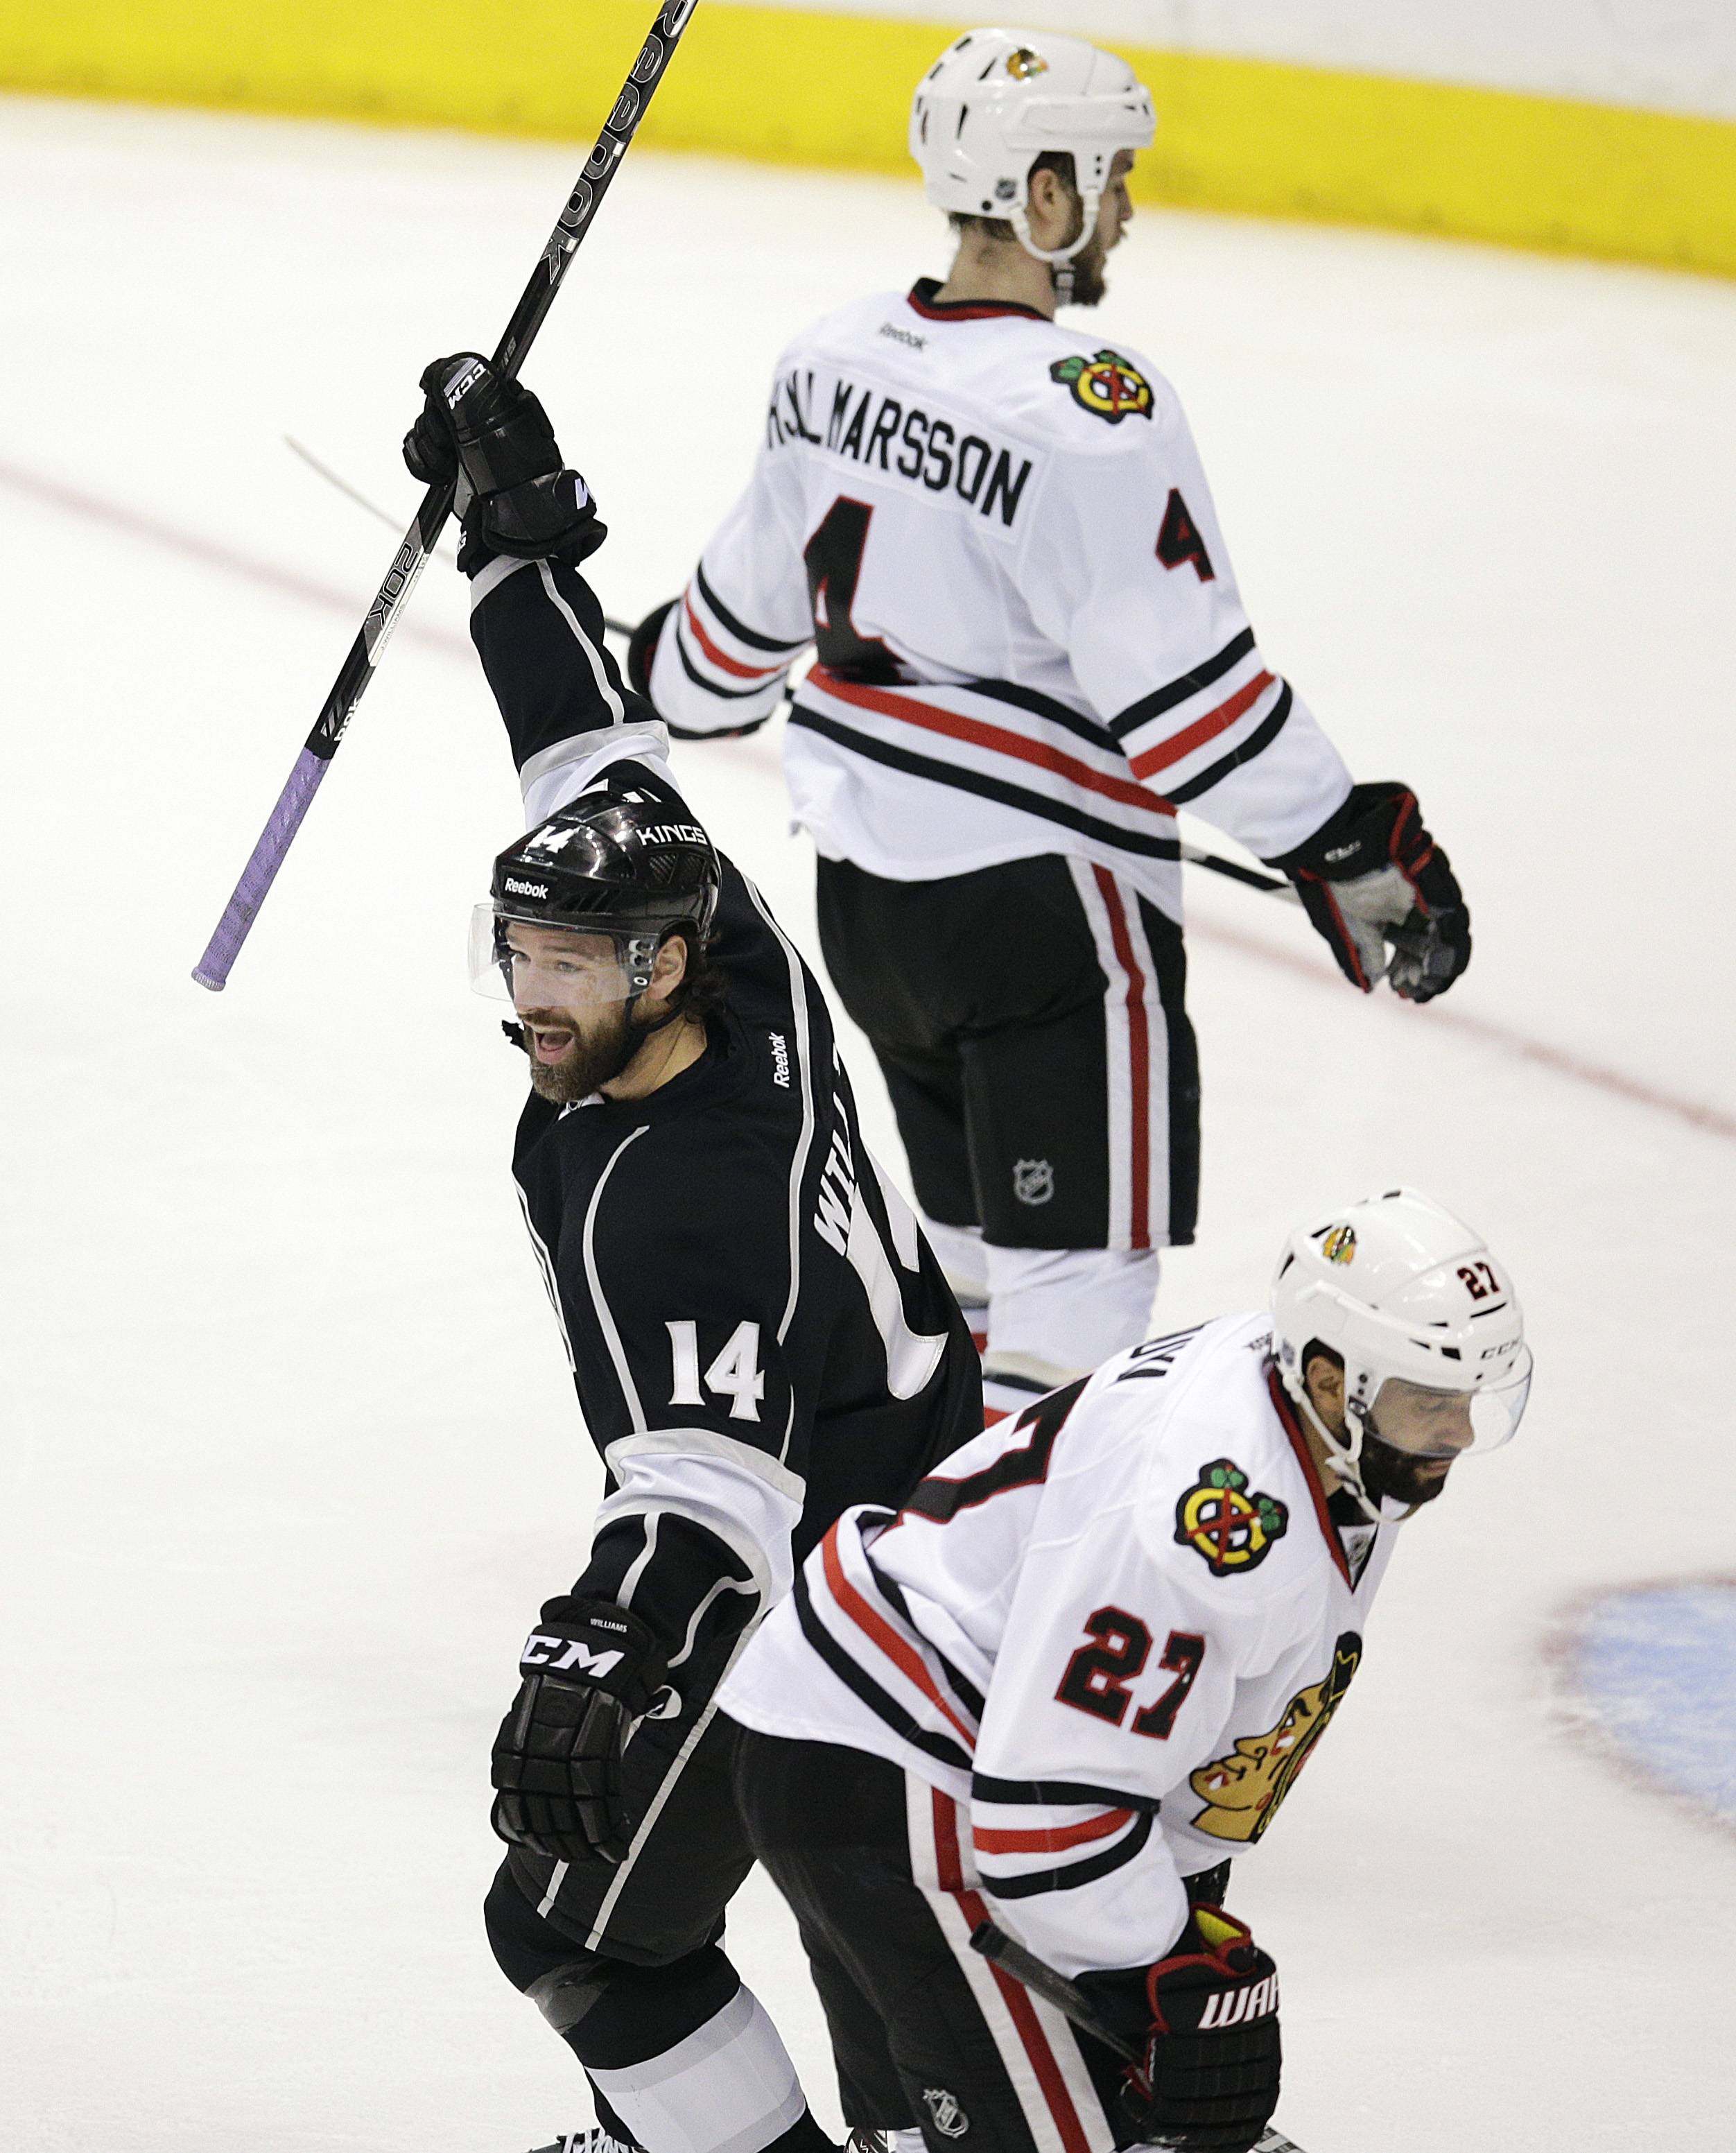 Los Angeles Kings' Justin Williams, center, celebrates a goal by Drew Doughty as he skates past Chicago Blackhawks Johnny Oduya, bottom, of Sweden, and Niklas Hjalmarsson, of Sweden, during the second period of Game 4 of the Western Conference finals of the NHL hockey Stanley Cup playoffs on Monday, May 26, 2014, in Los Angeles.